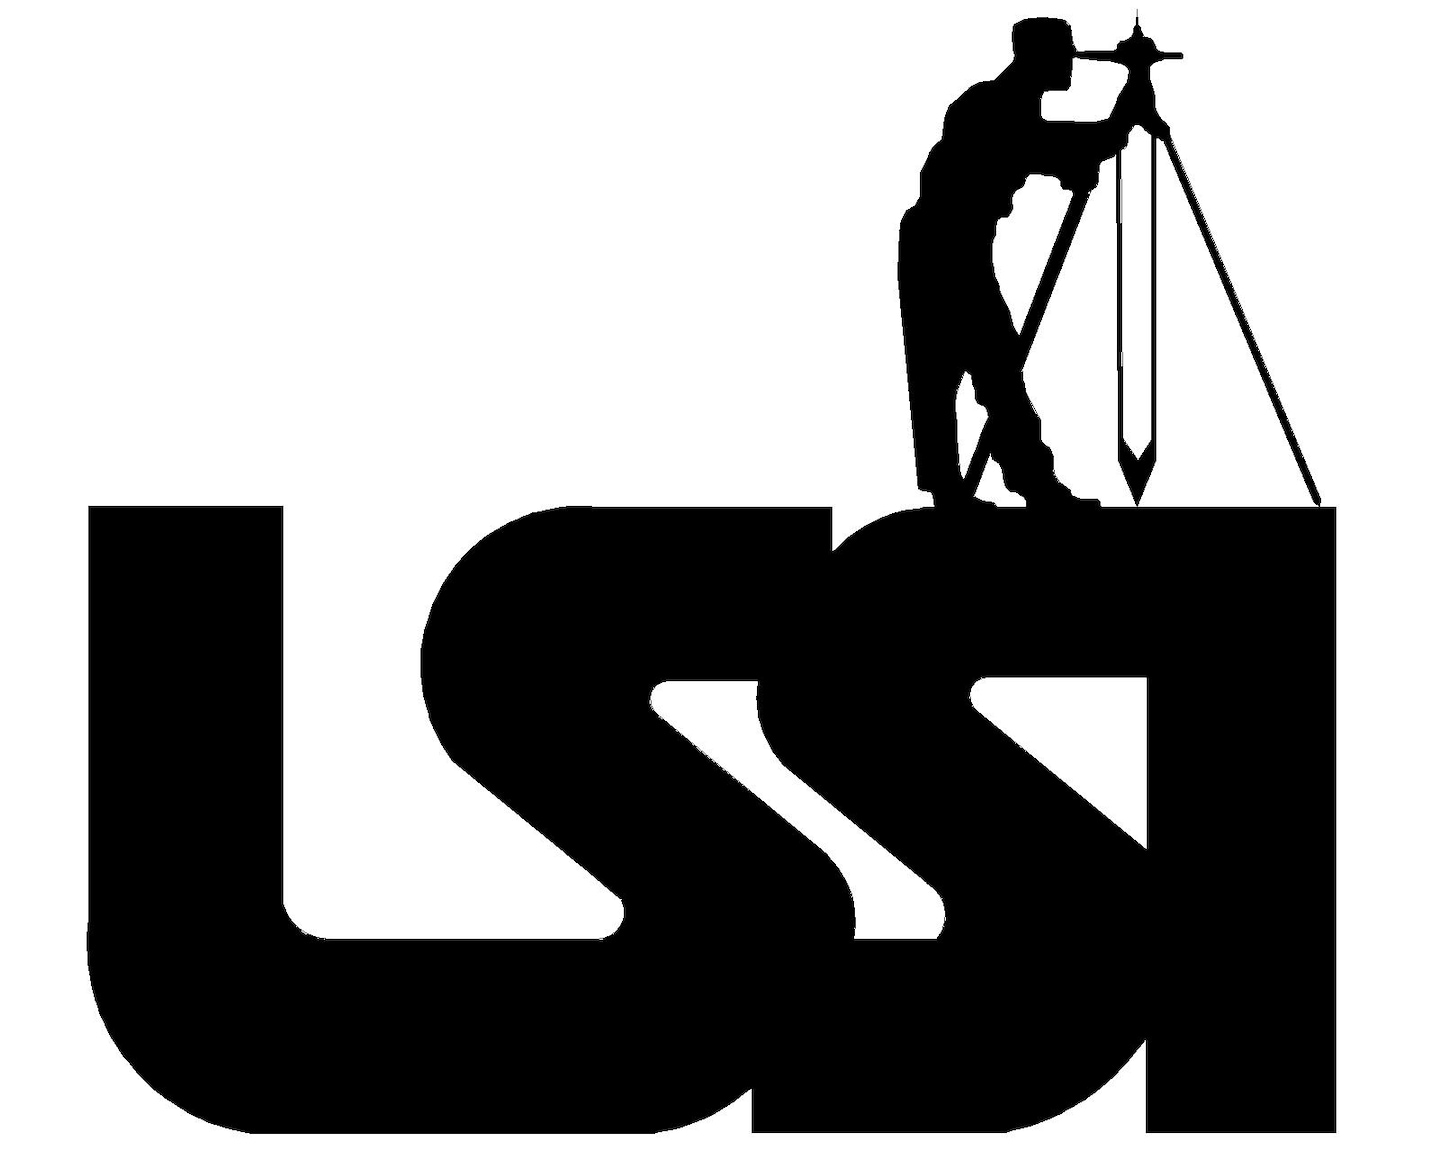 Land Surveying Services Inc